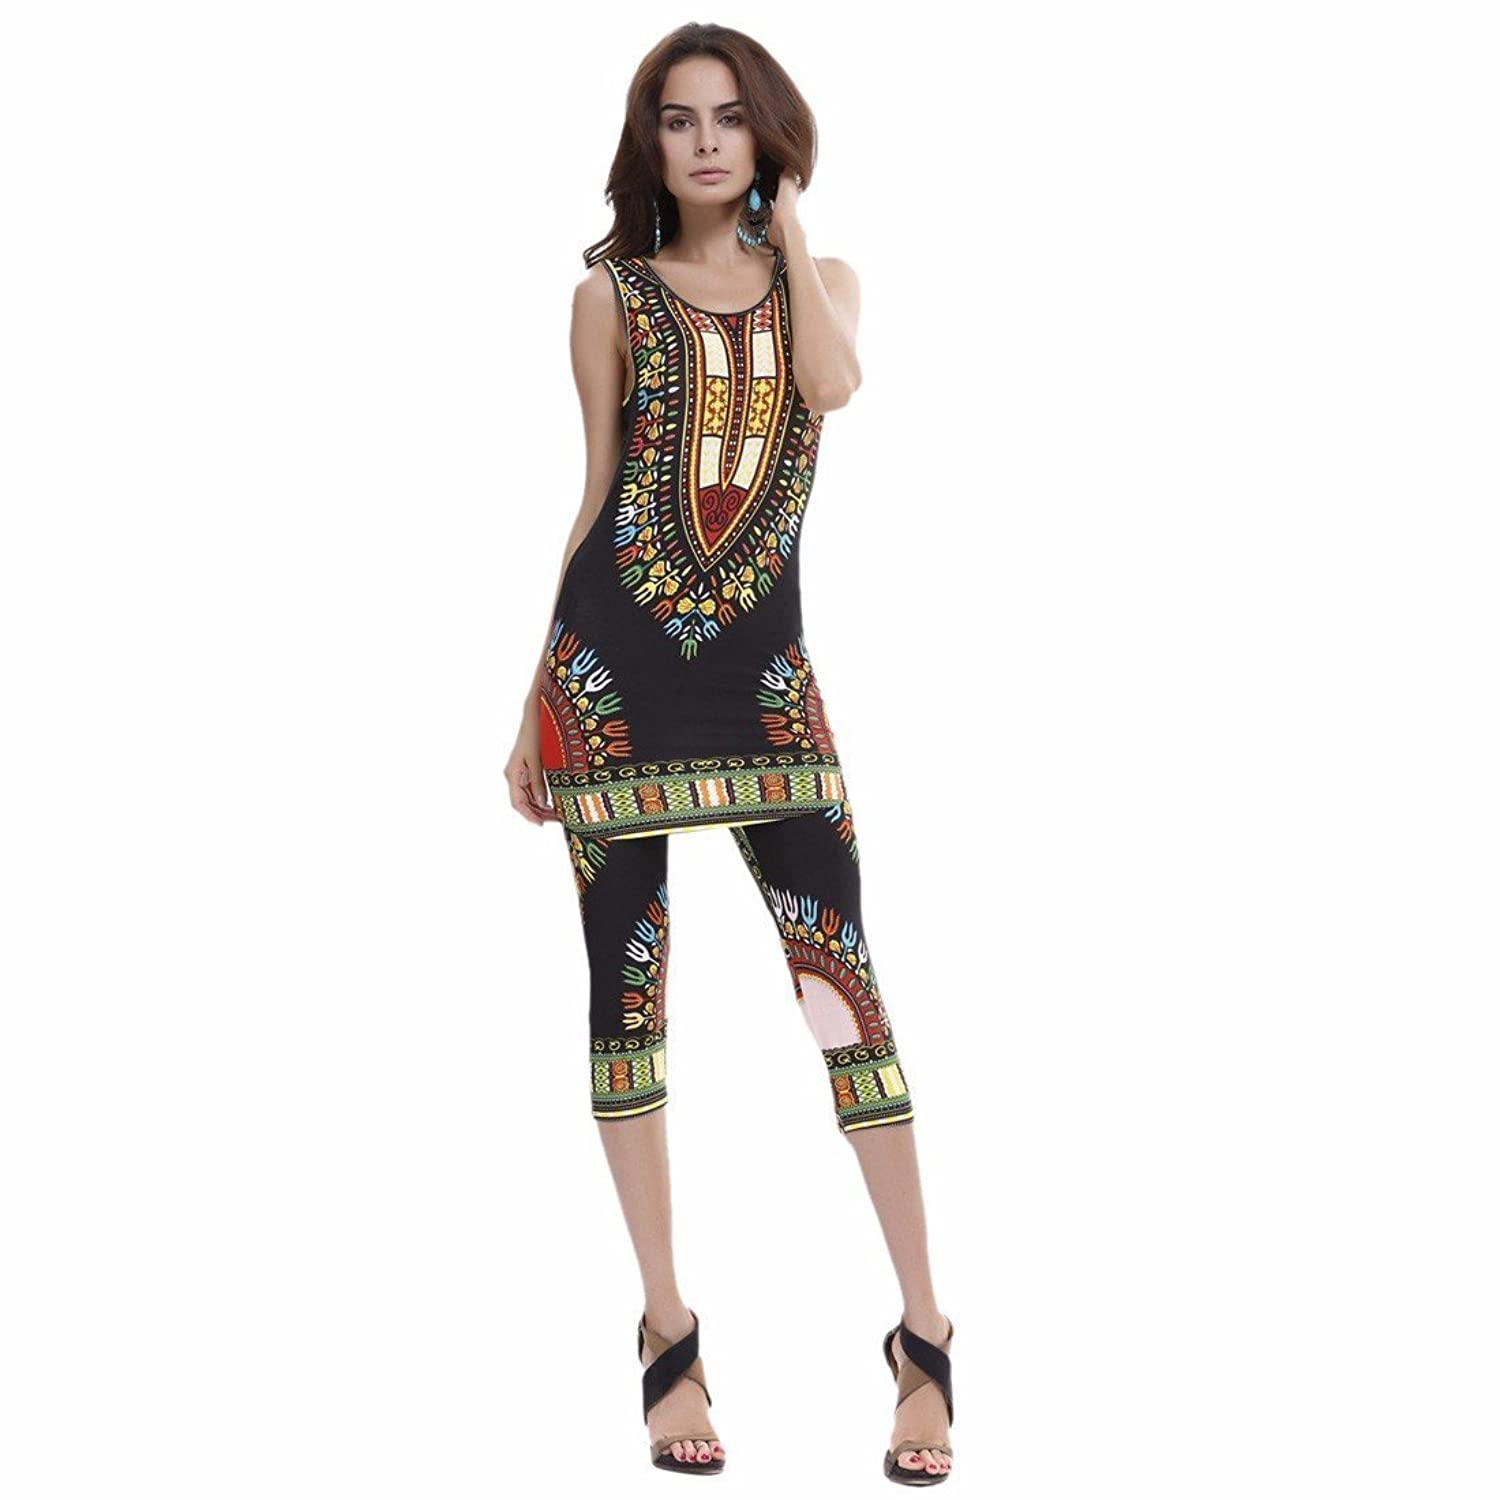 Lady African Design Printed Two-piece Vests+Pants Plus Size Sleeveless Hot